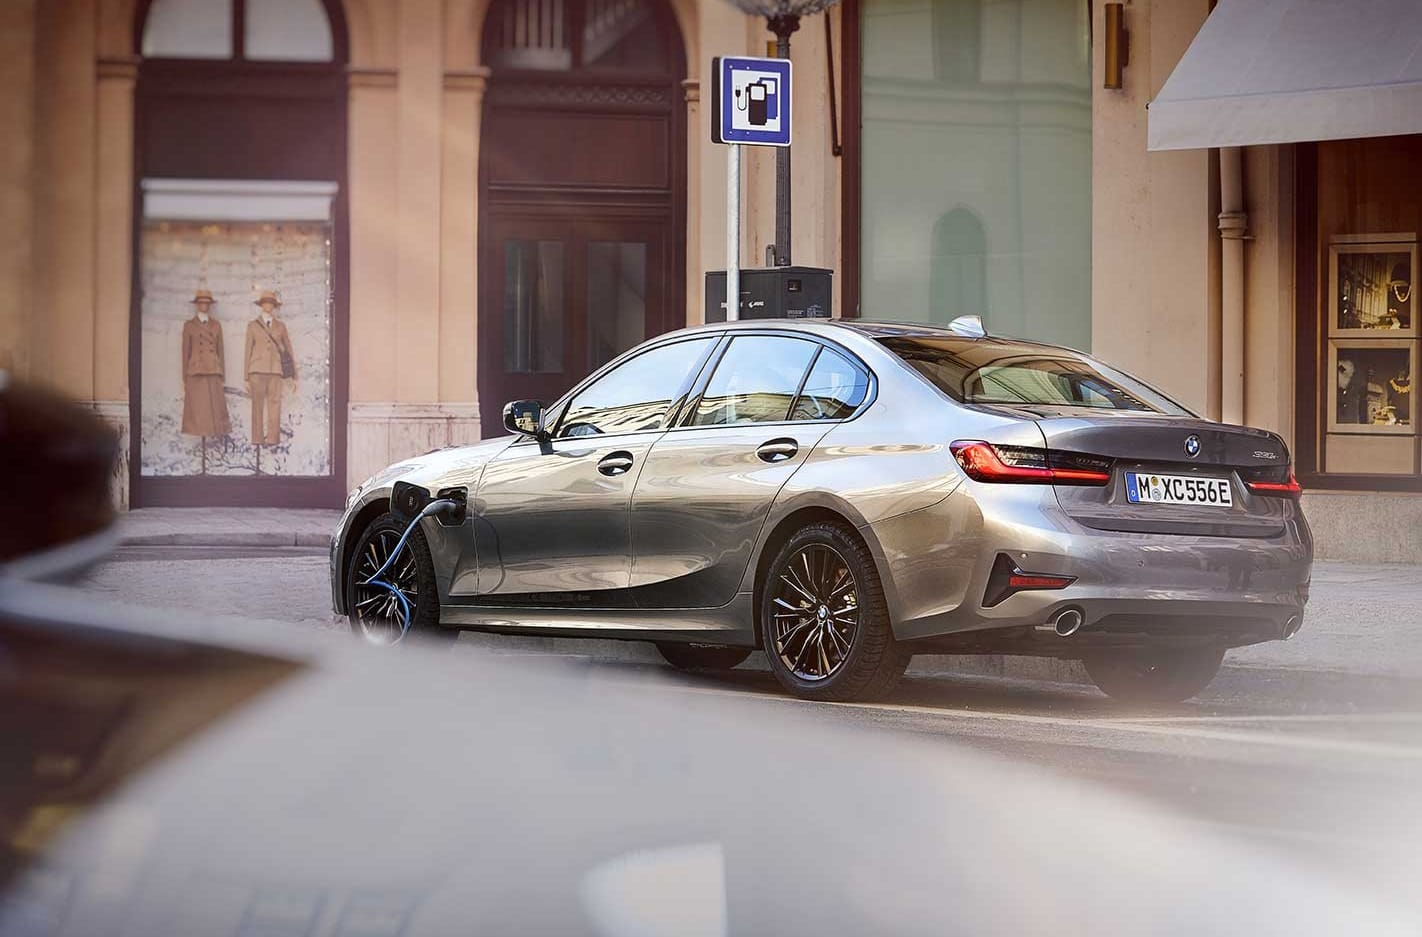 BMW recalls small batches of vehicles for fire and steering failure risks